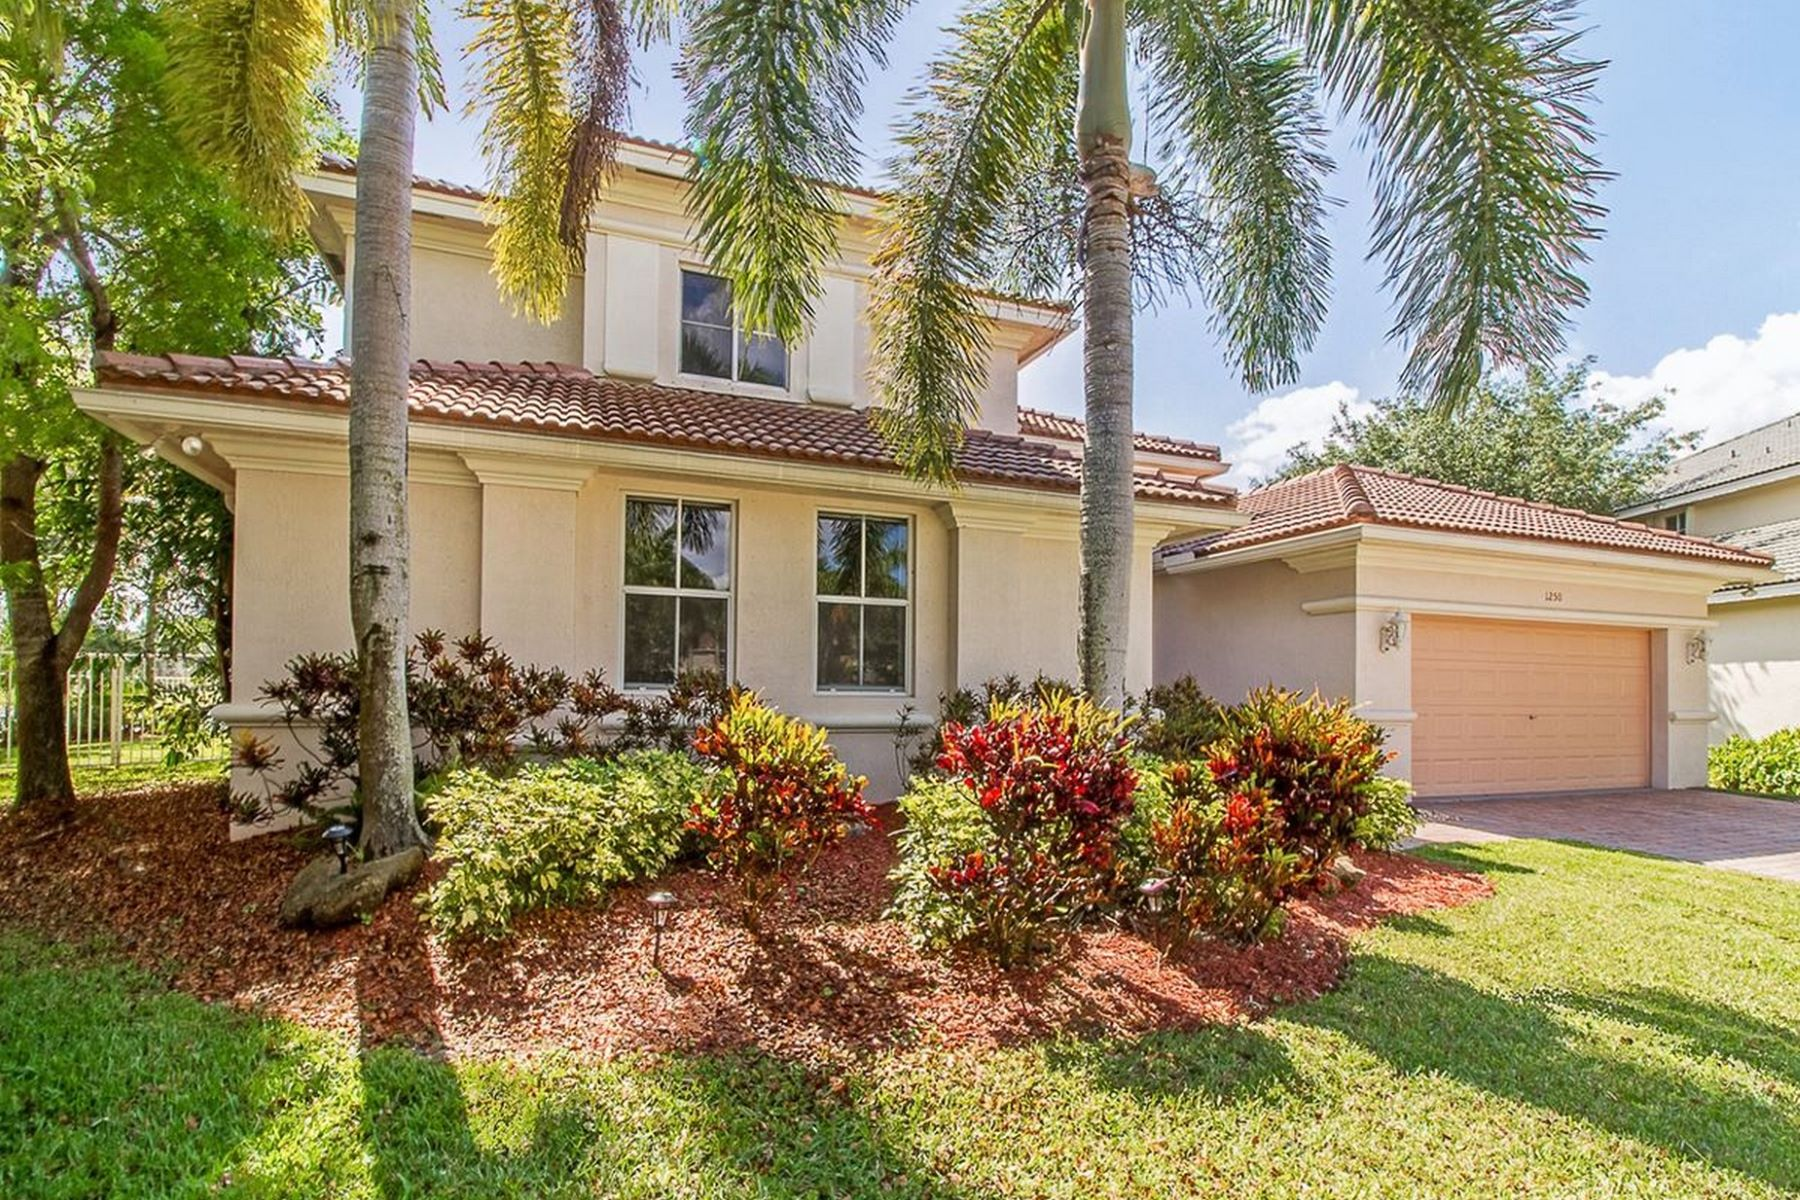 Single Family Home for Rent at 1250 Placid Ct 1250 Placid Ct Weston, Florida 33327 United States